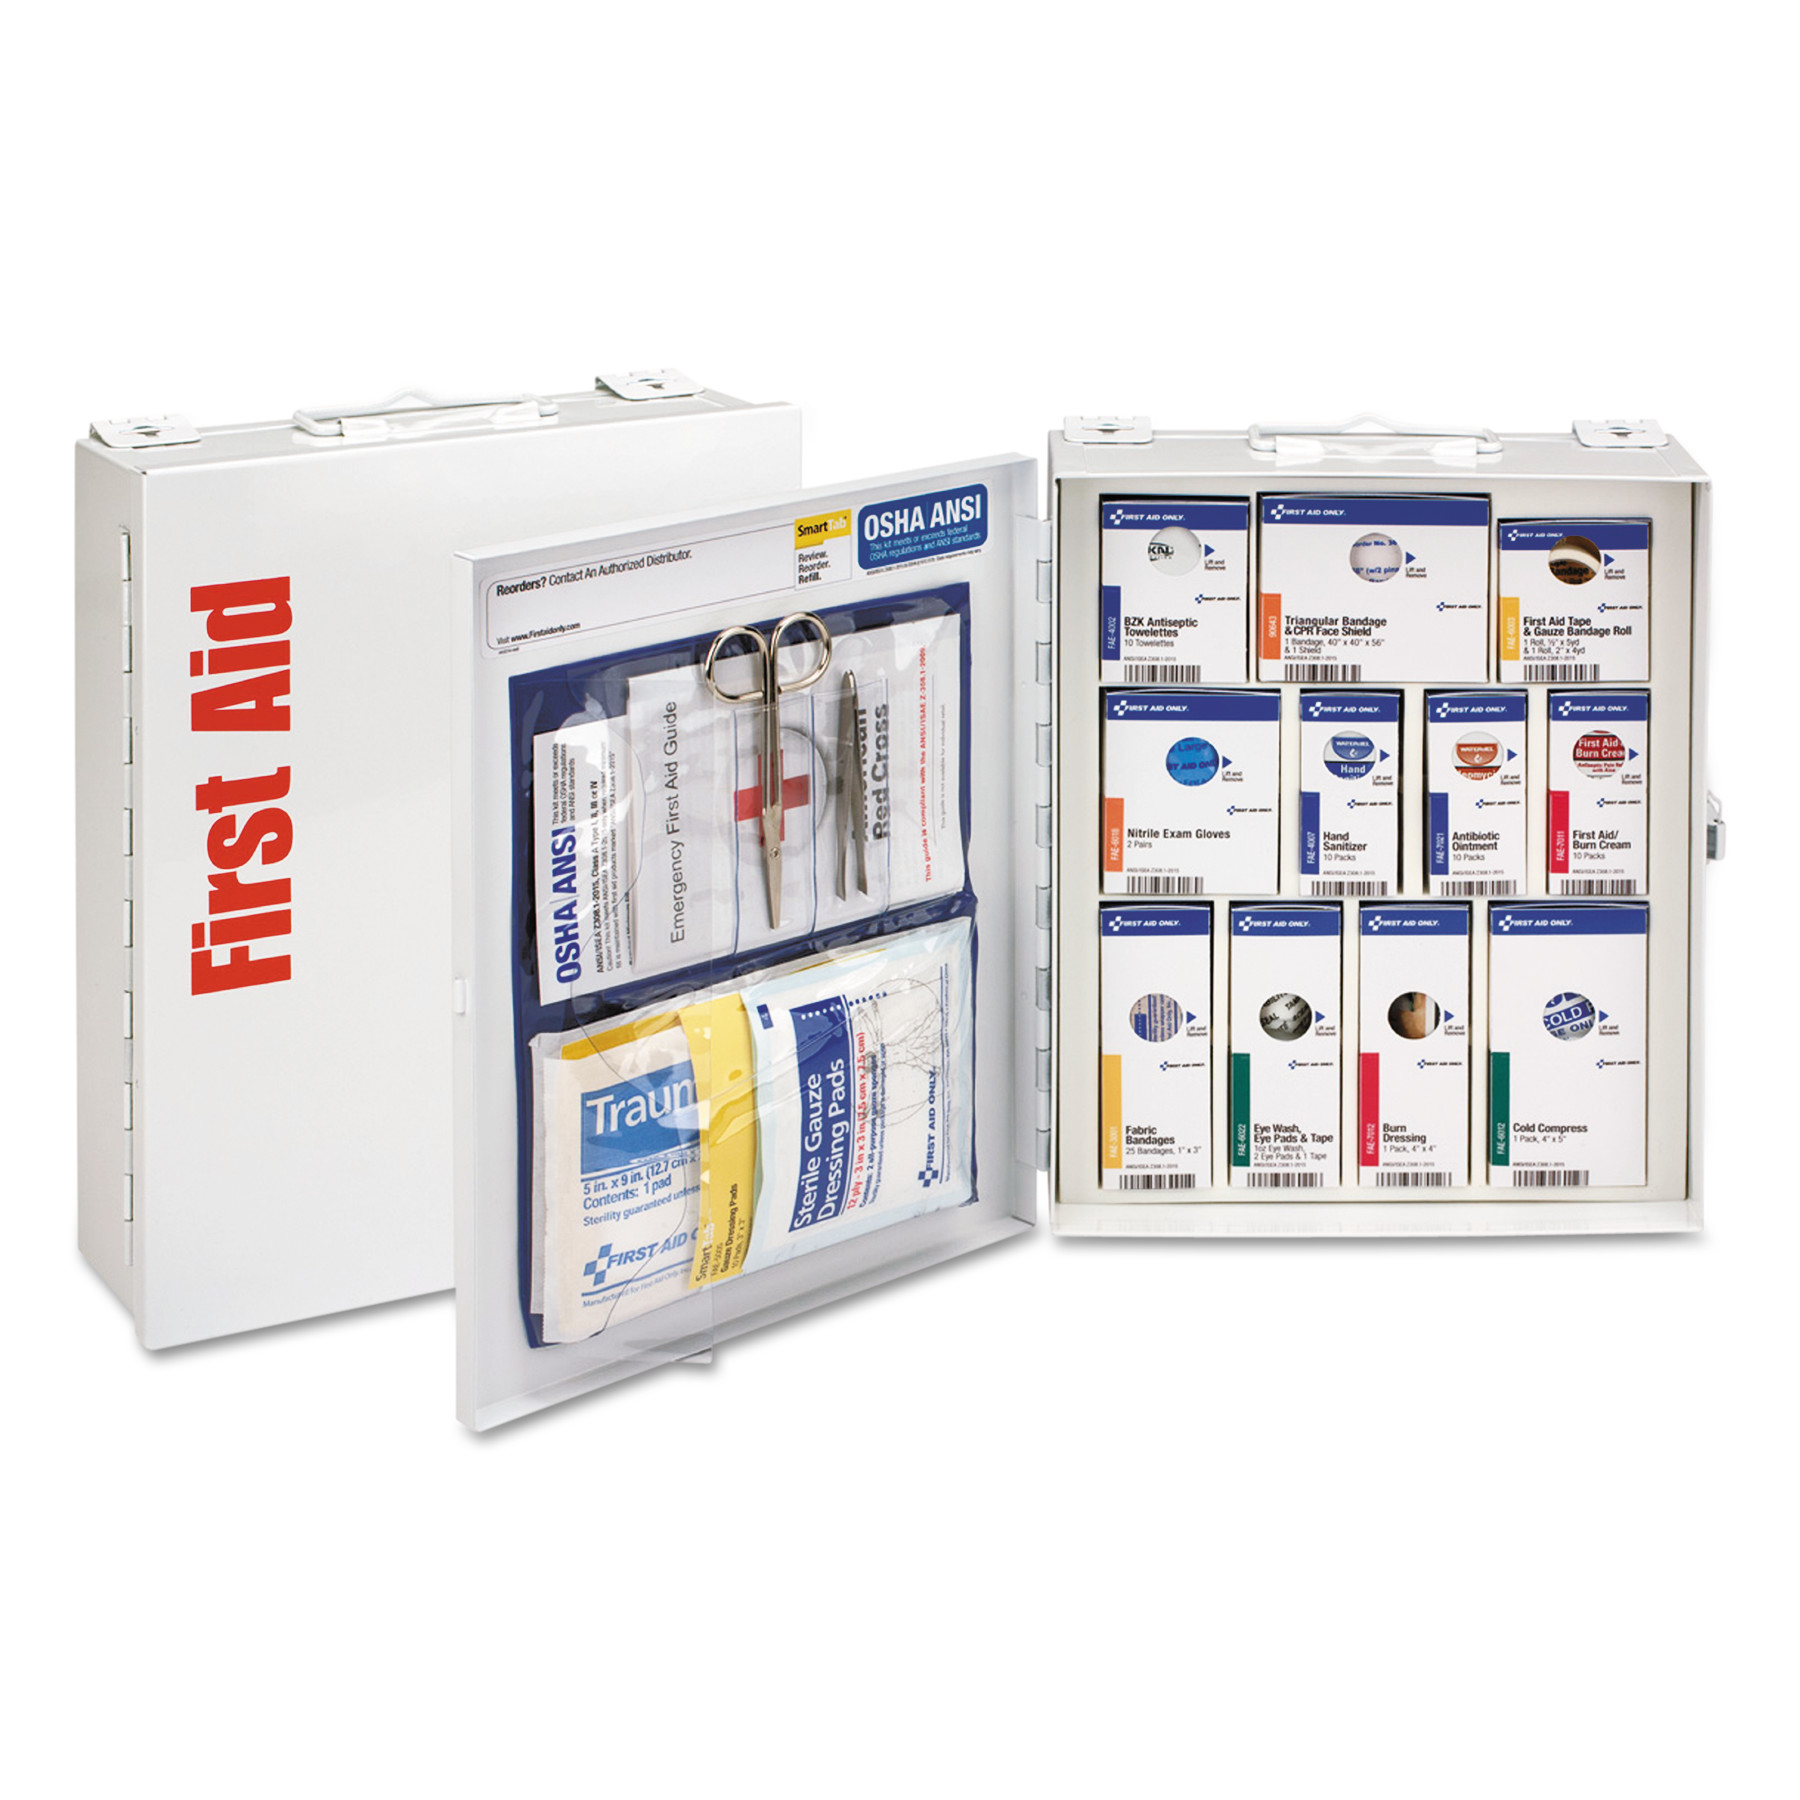 First Aid Only ANSI 2015 SmartCompliance First Aid Station Class A, No Meds,25 People,96 Pieces by FIRST AID ONLY, INC.